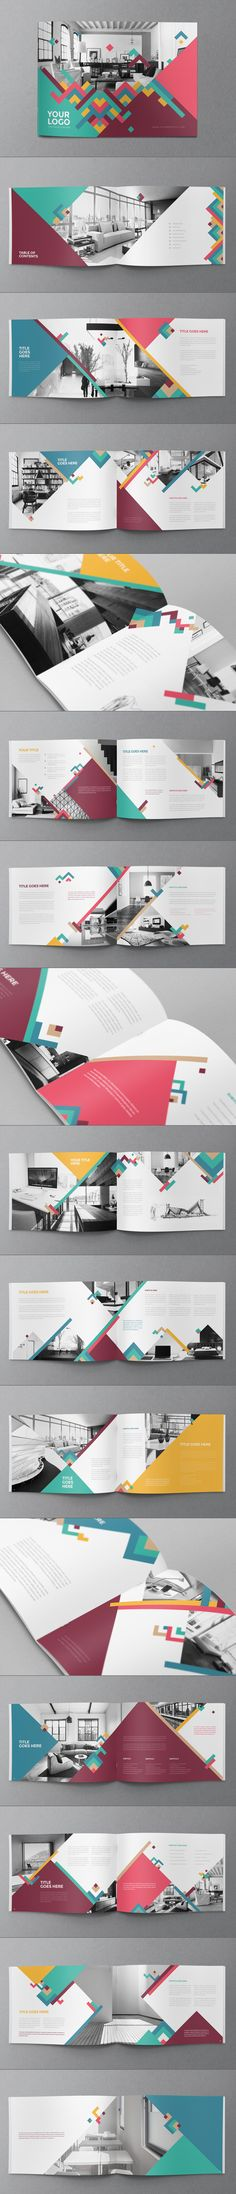 Buy Colorful Pattern Brochure 2 by AbraDesign on GraphicRiver. COLORFUL PATTERN BROCHURE 2 This brochure is an ideal way to showcase your business in an original way. Design Brochure, Booklet Design, Graphic Design Layouts, Brochure Ideas, Brochure Template, Yearbook Layouts, Yearbook Design, Yearbook Theme, Yearbook Spreads